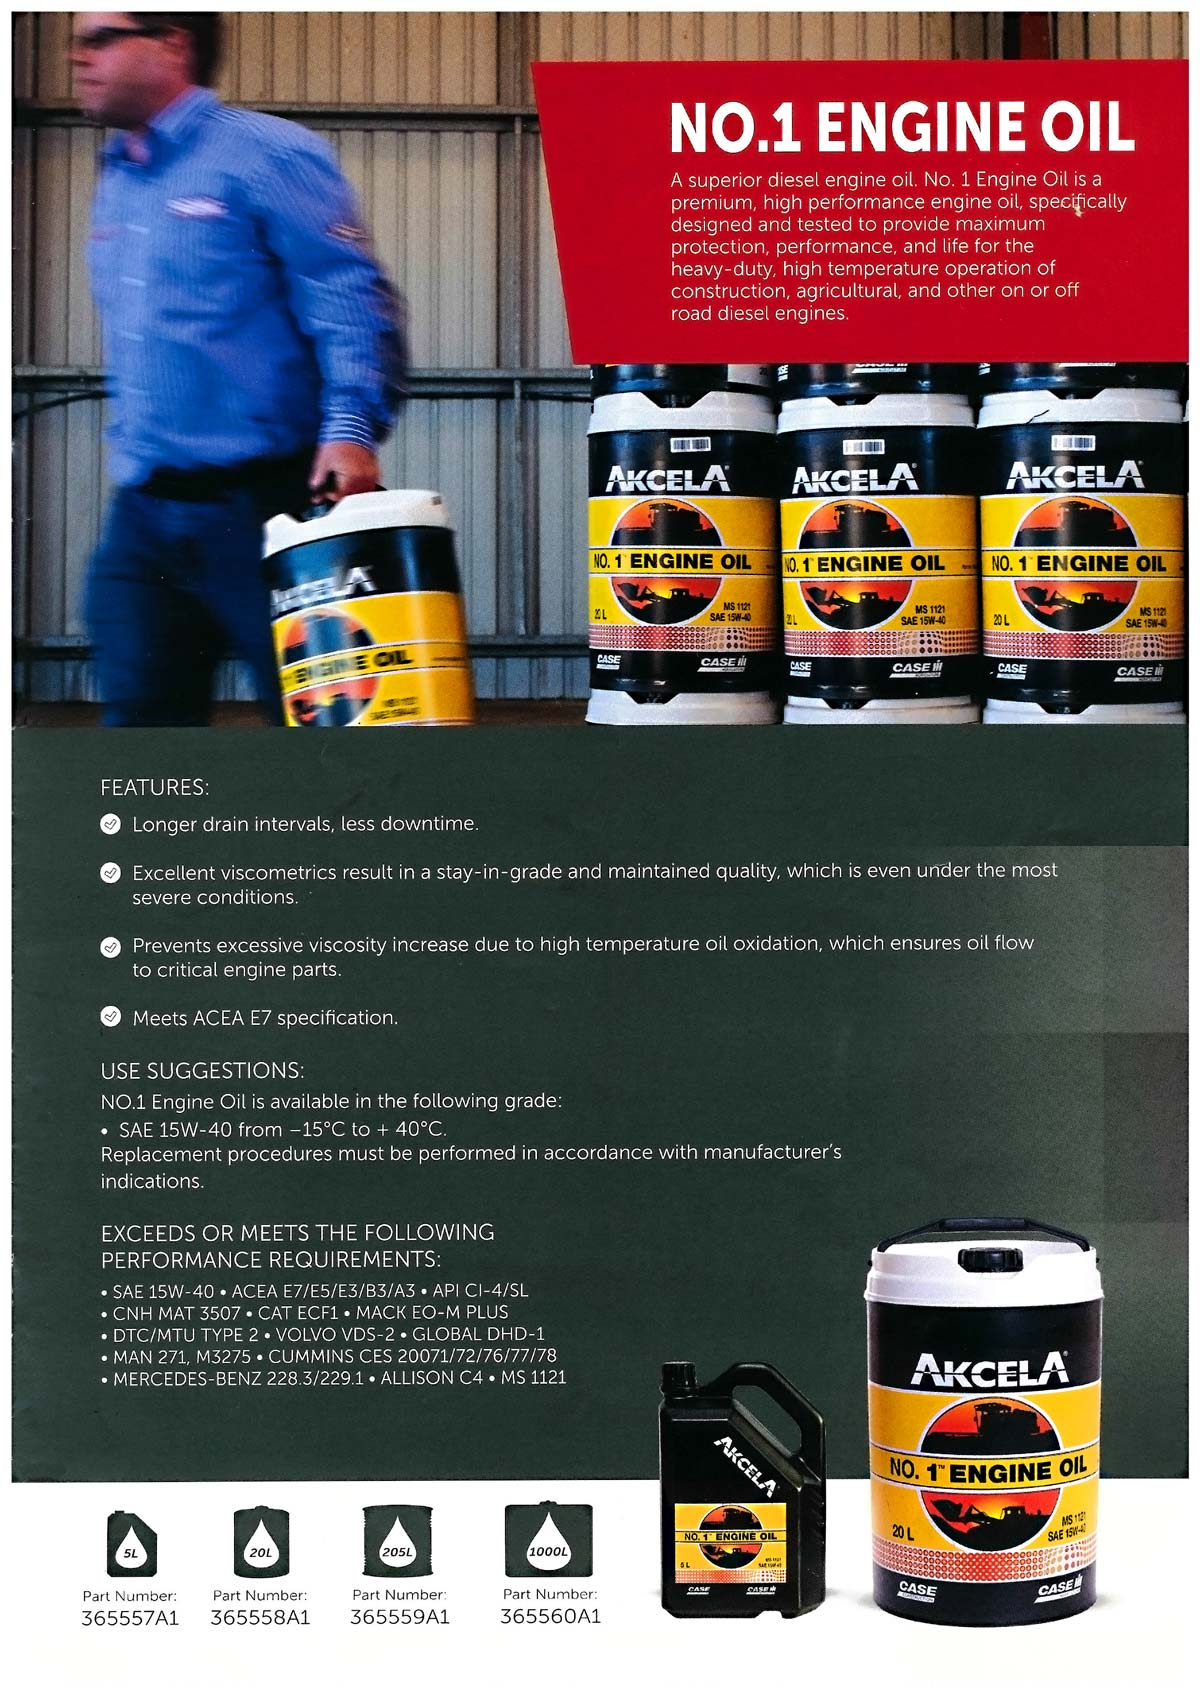 Akcela No 1 Engine Oil promo